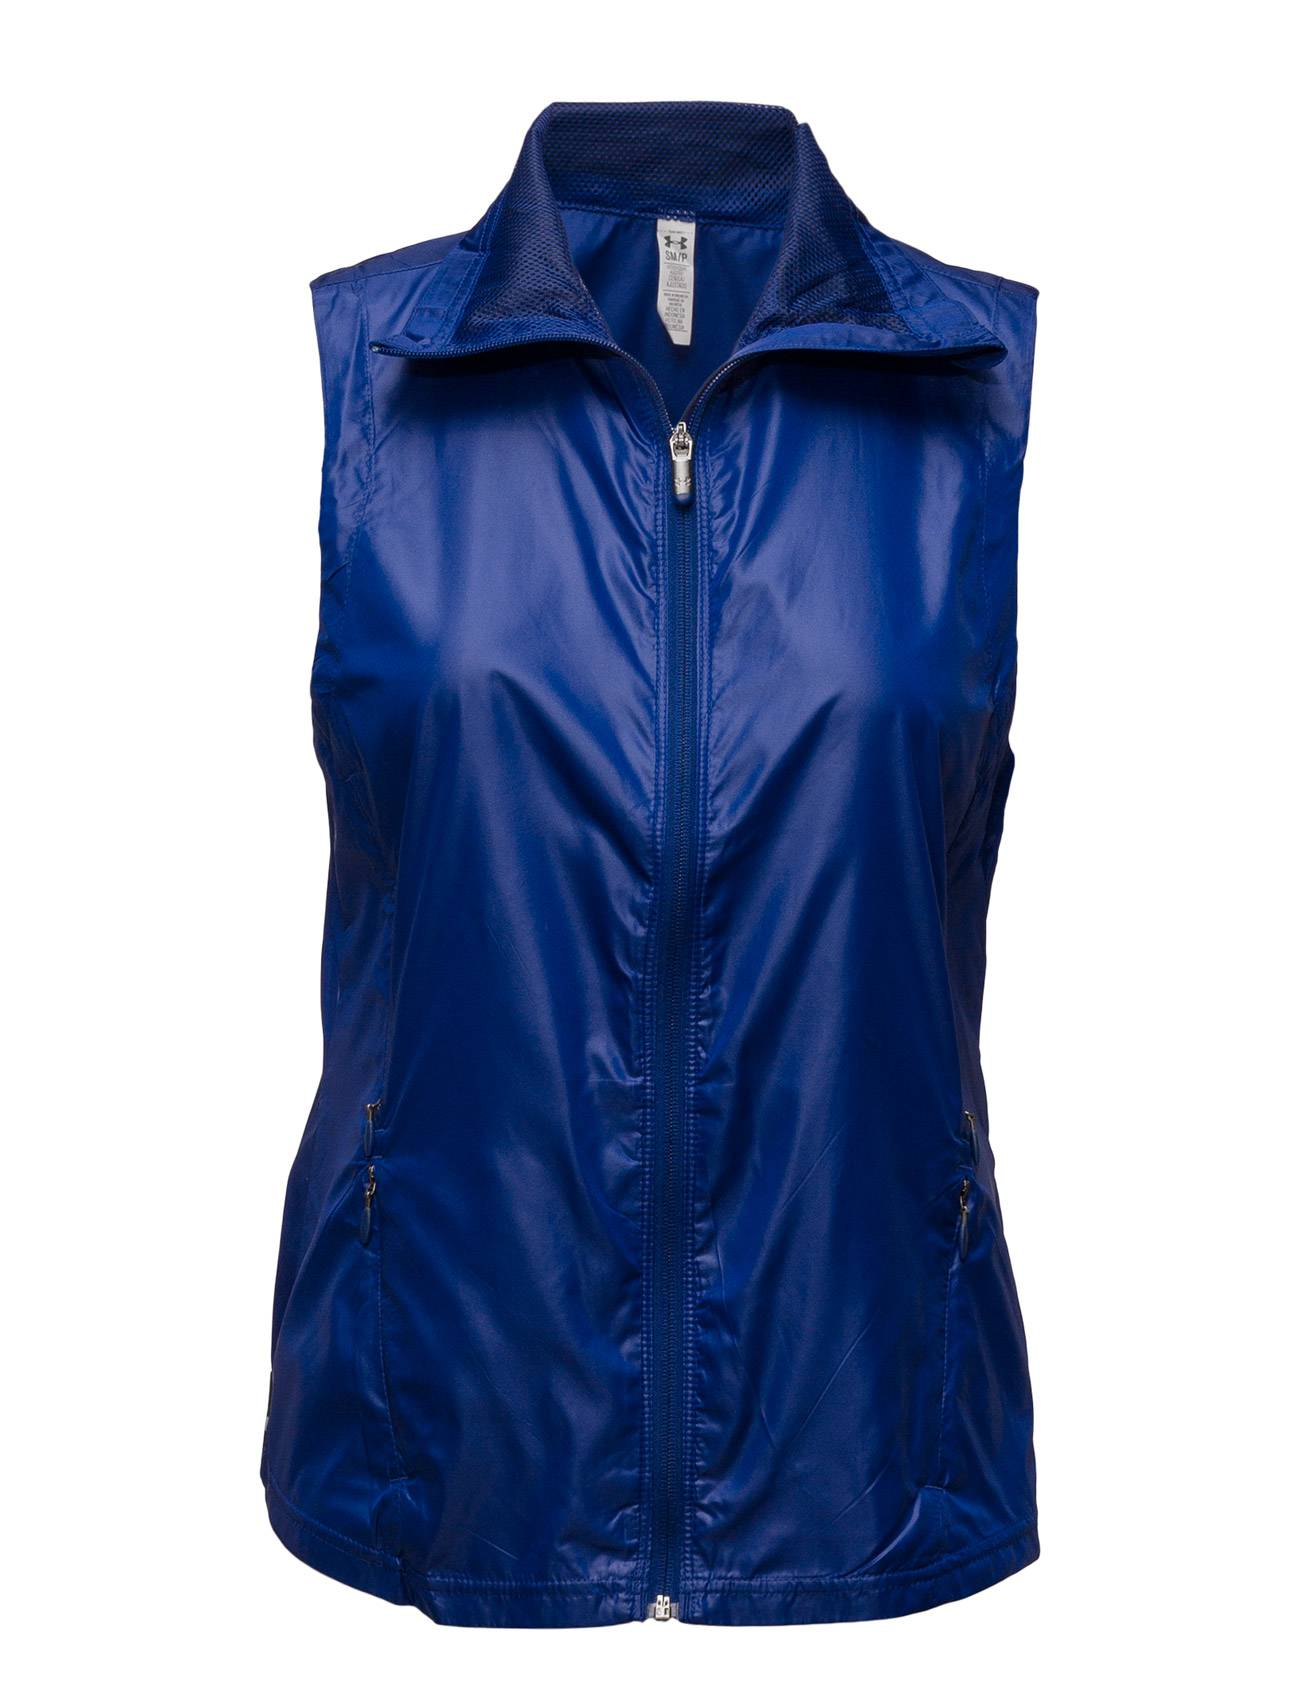 Under Armour Layered Up! Storm Vest